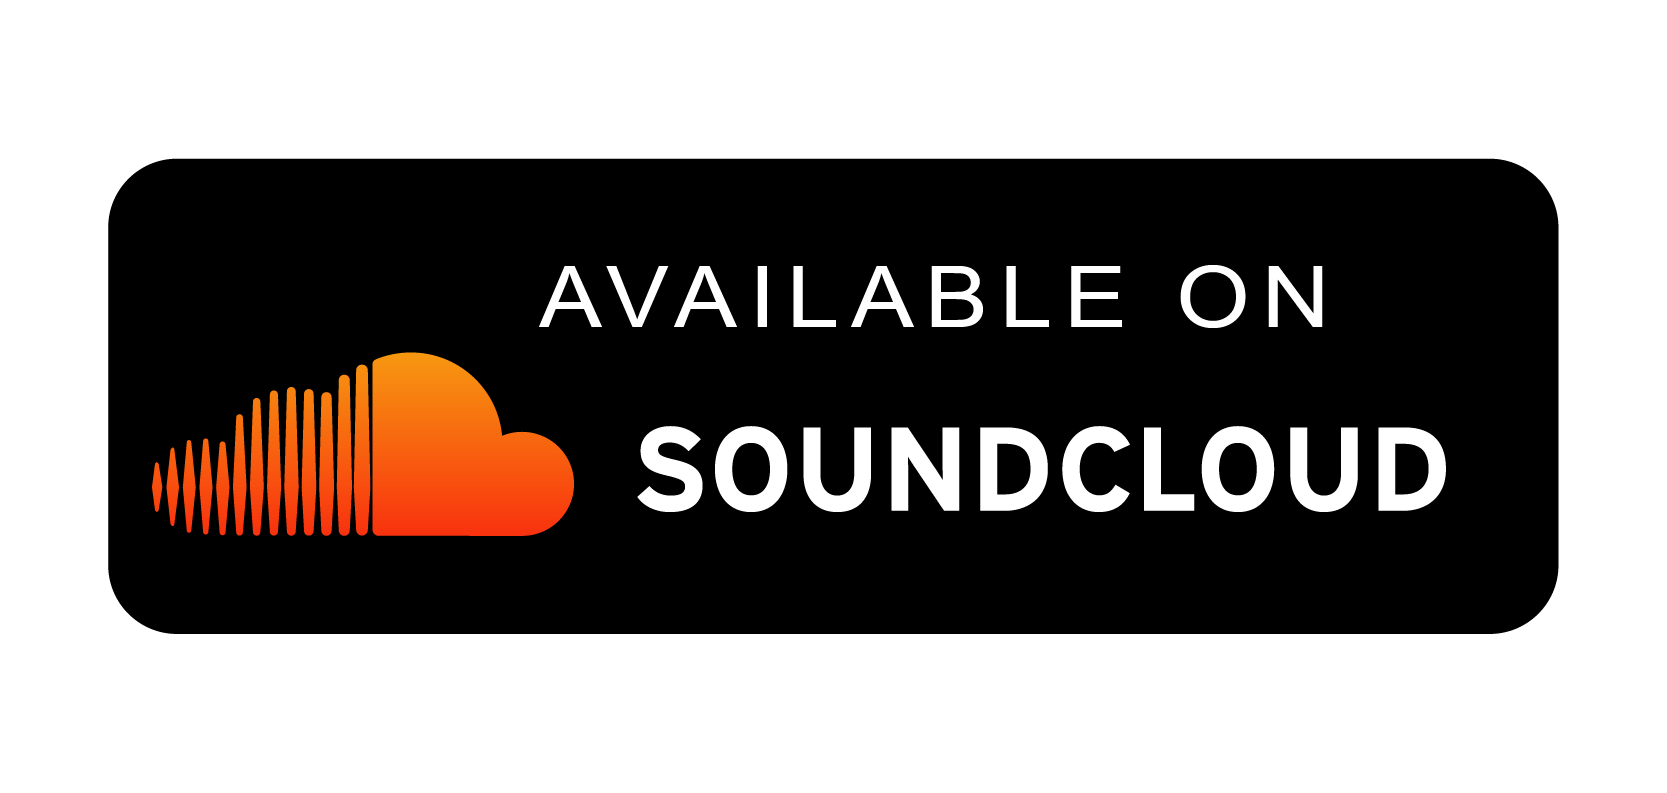 Soundcloud png logo. Last cut press logos